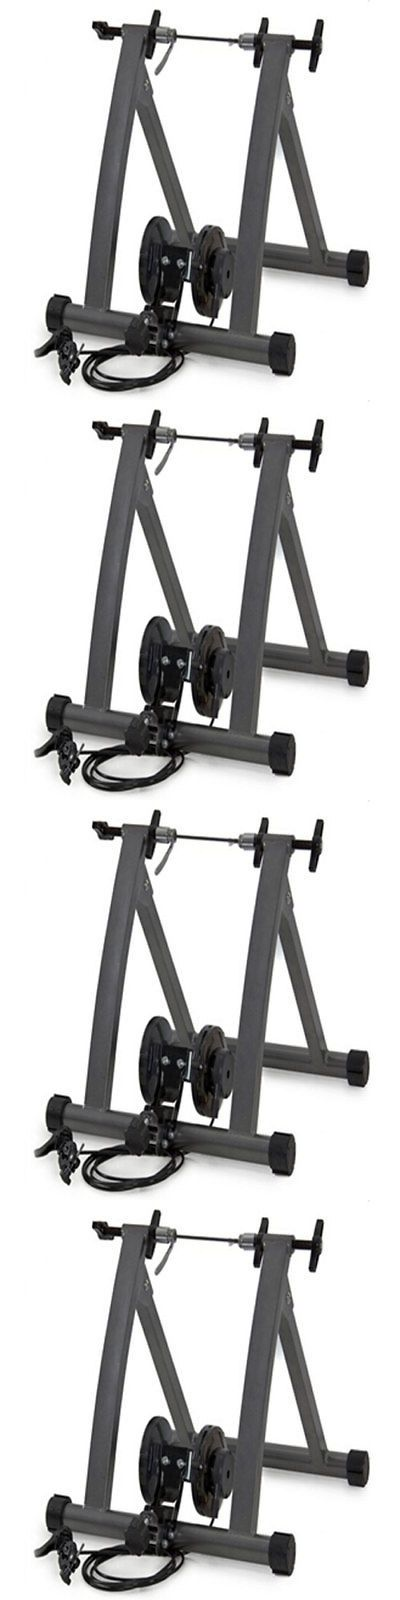 Trainers and Rollers 36141: Wired Indoor Black Bicycle Practice Stand Bicycle Trainer Iron Exercise Stand -> BUY IT NOW ONLY: $76.5 on eBay!